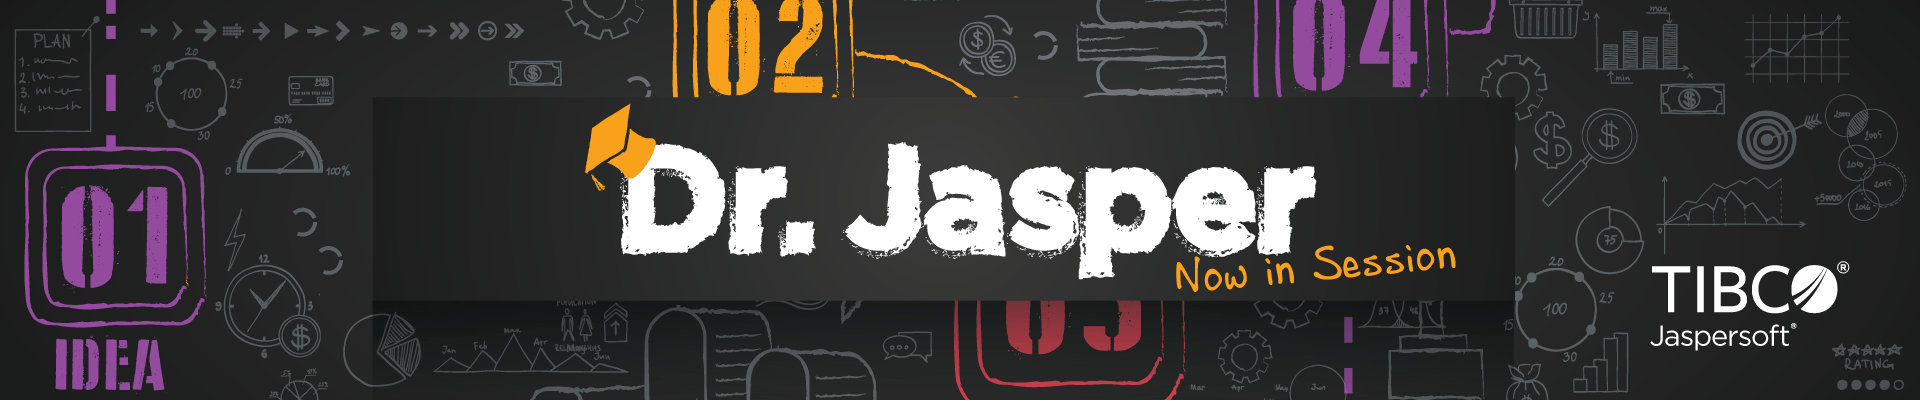 Dr. Jasper Office Hours